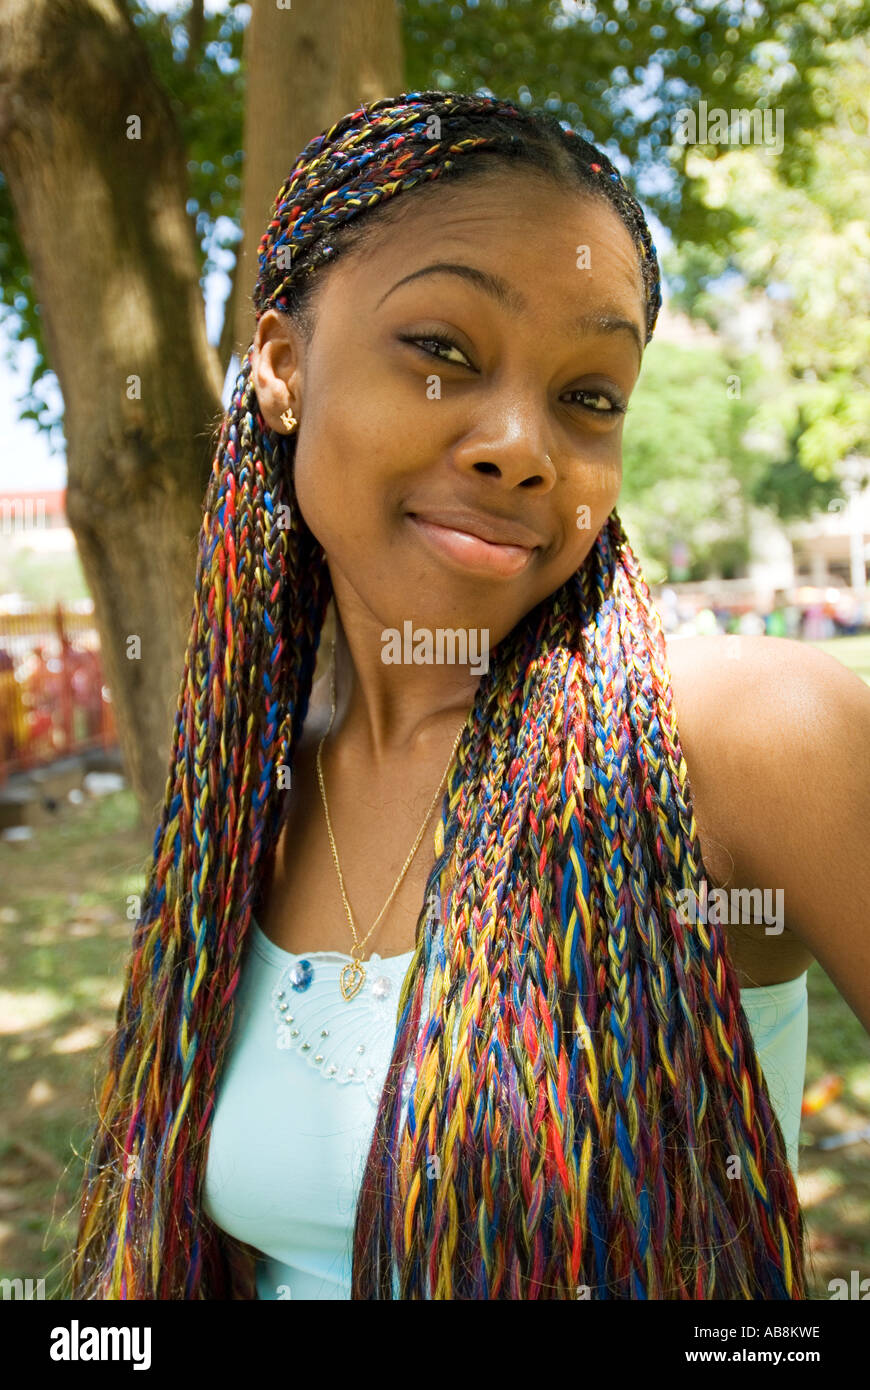 West Indies Trinidad Carnival Port Of Spain Portrait Young Lady With Colorful Braided Long Hair Posing For The Camera